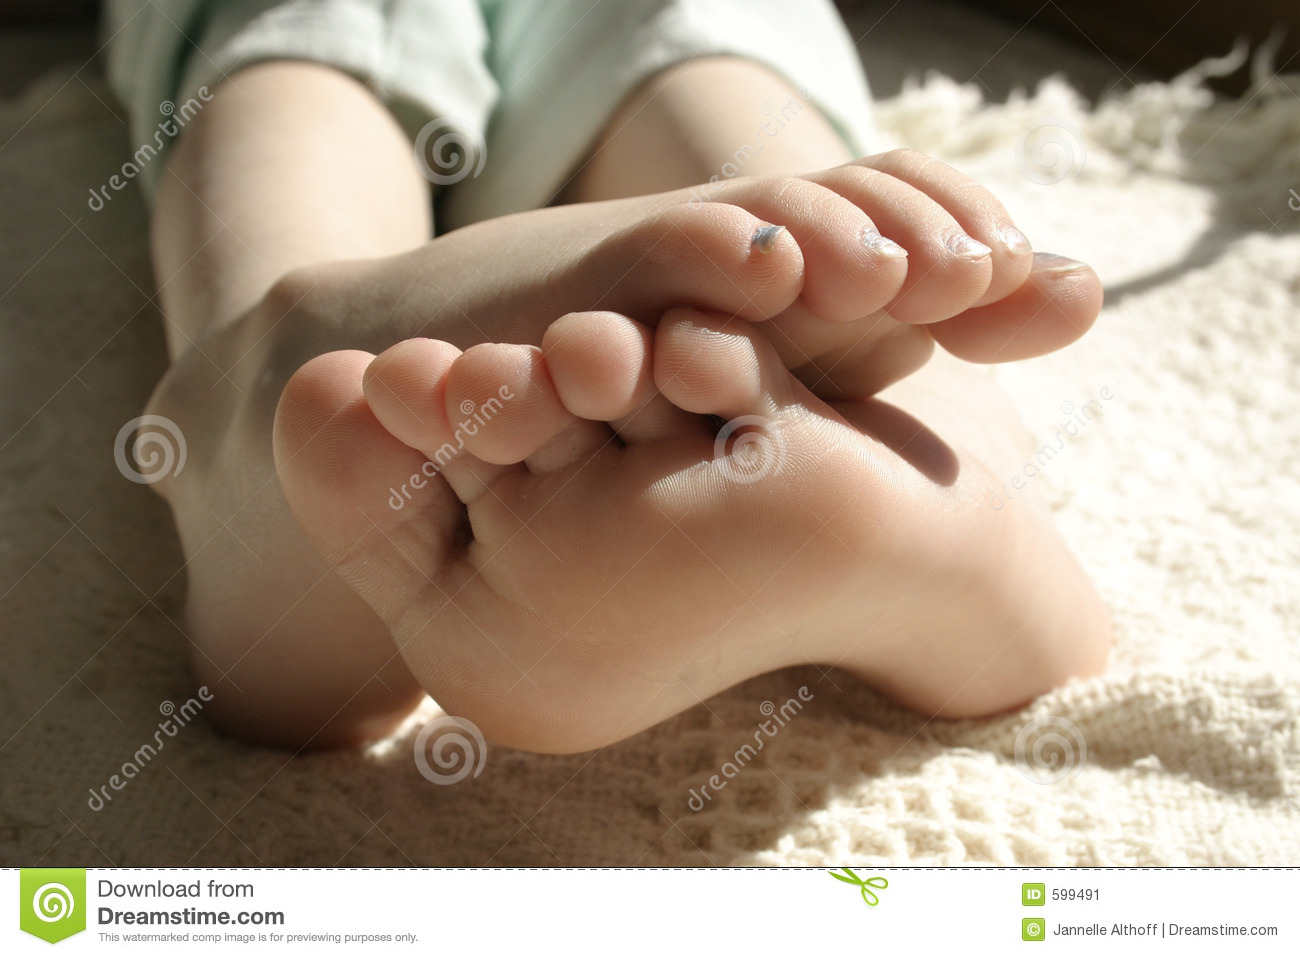 Little girl resting feet.